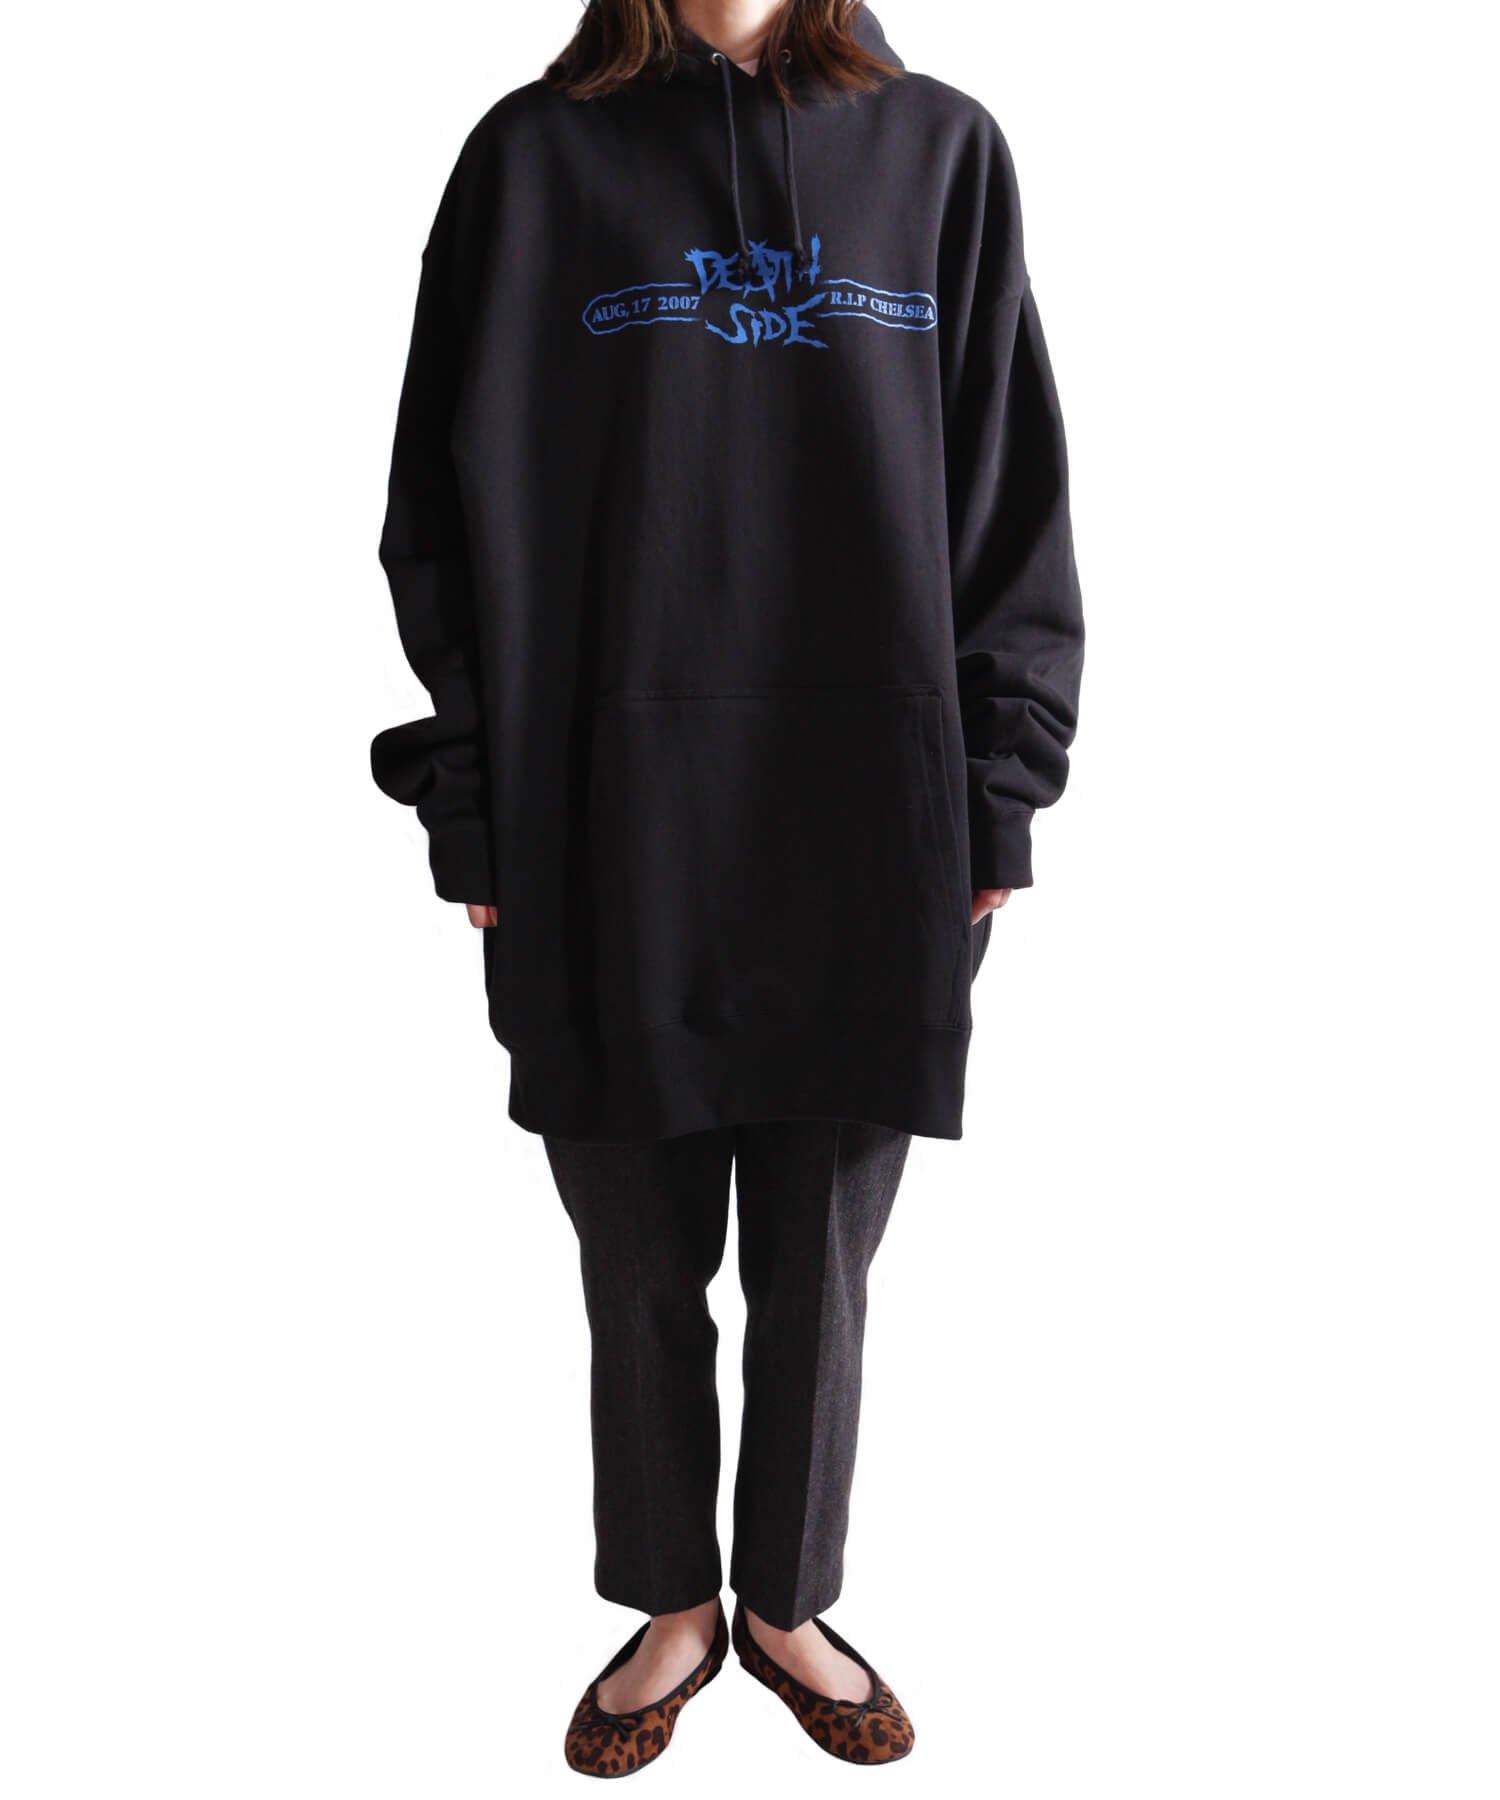 Official Artist Goods / バンドTなど  DEATH SIDE / デスサイド:SATISFY THE INSTINCT (PULLOVER) 商品画像14